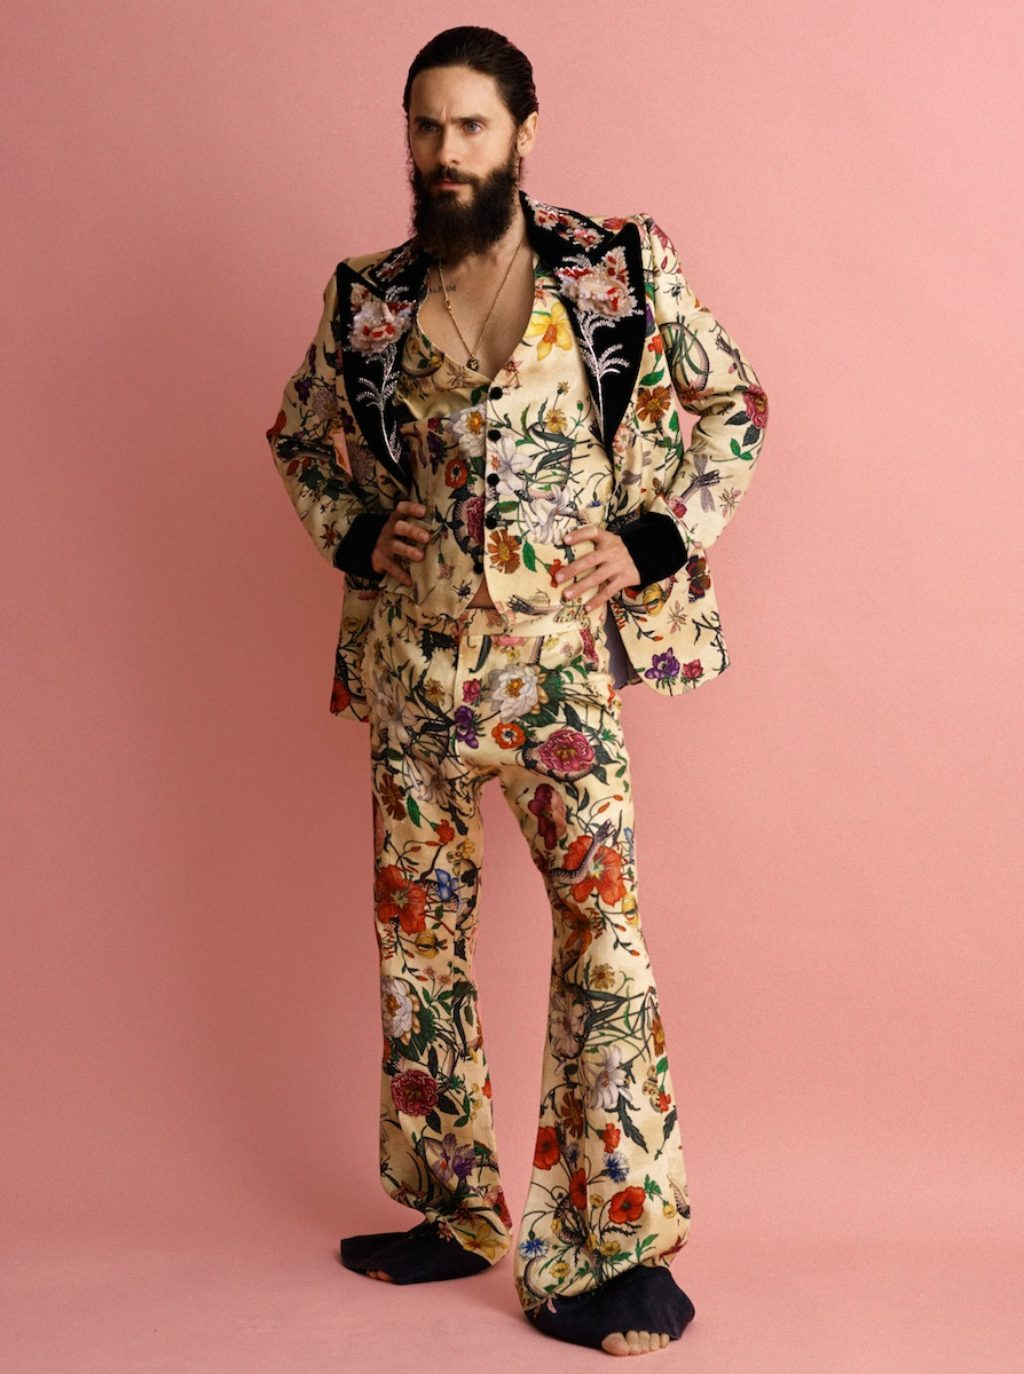 Jarod Leto in Gucci floral suit